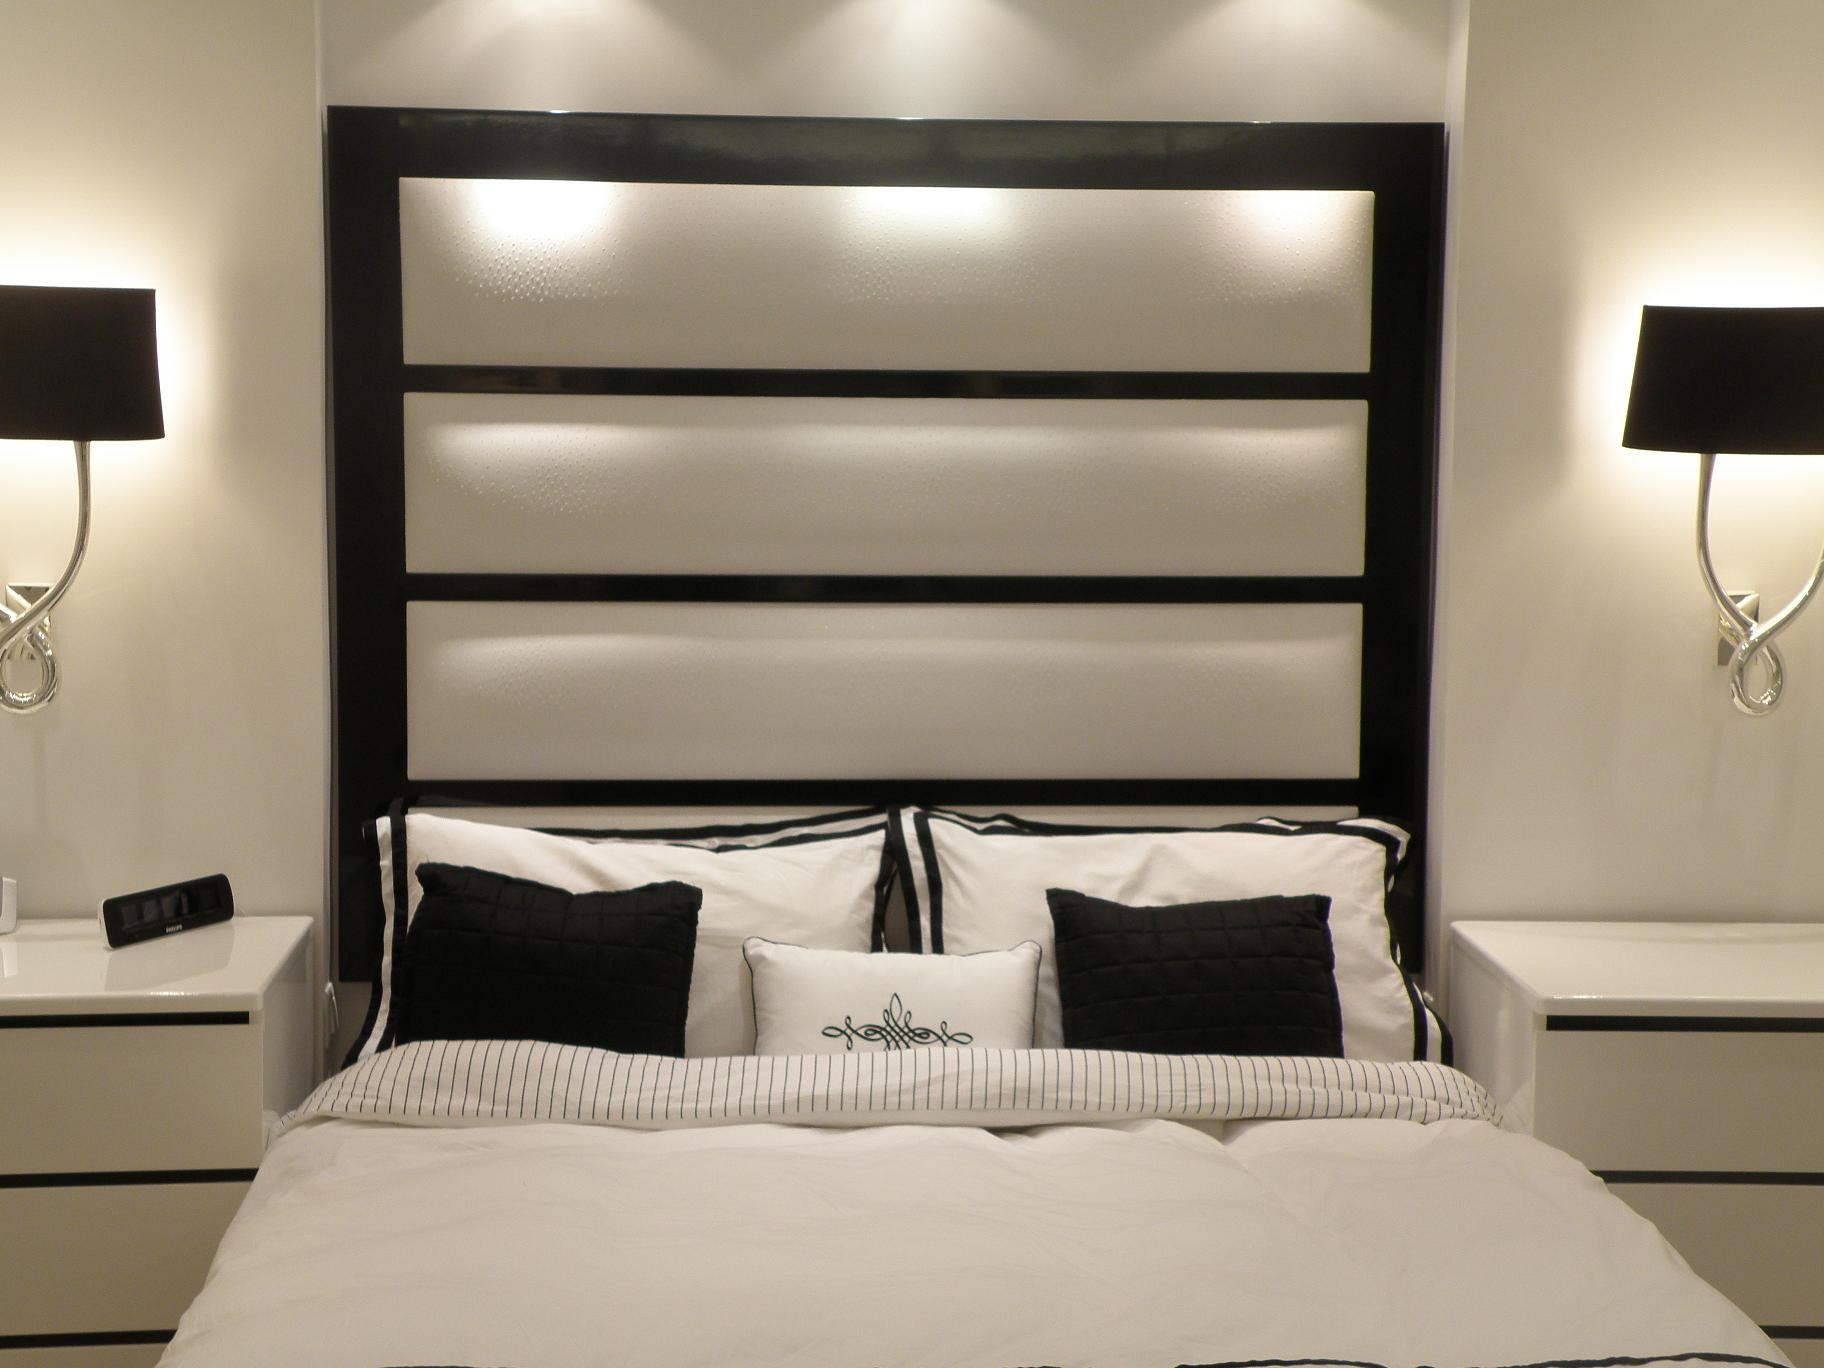 Headboard Design Ideas elegant excellent ideas for headboards diy pics design inspiration has cool headboards Luxury Headboard For Your Modern Bedroom Design Ideas